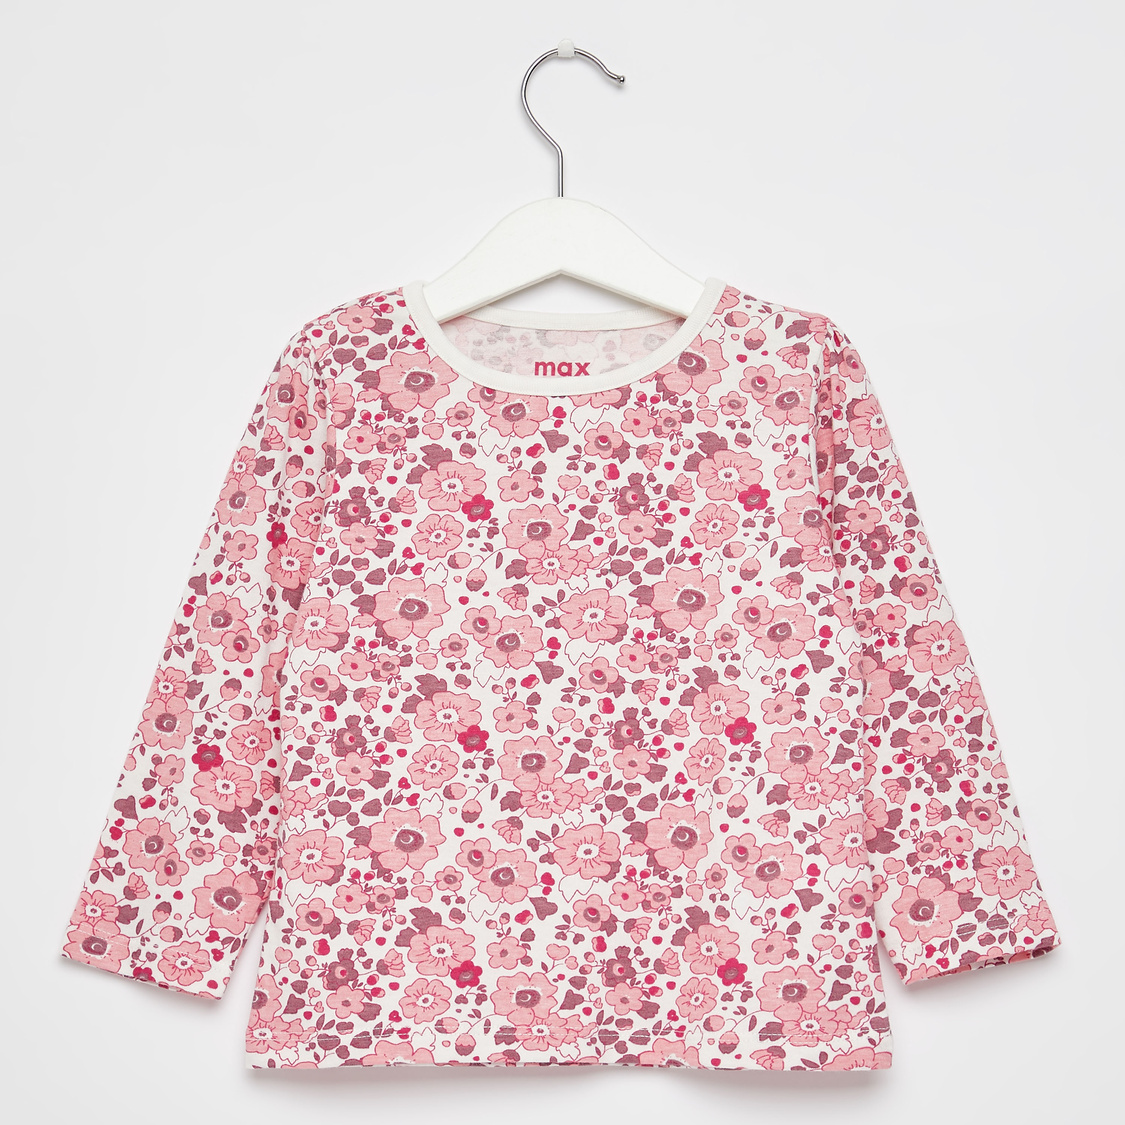 Floral Print T-shirt with Round Neck and Long Sleeves